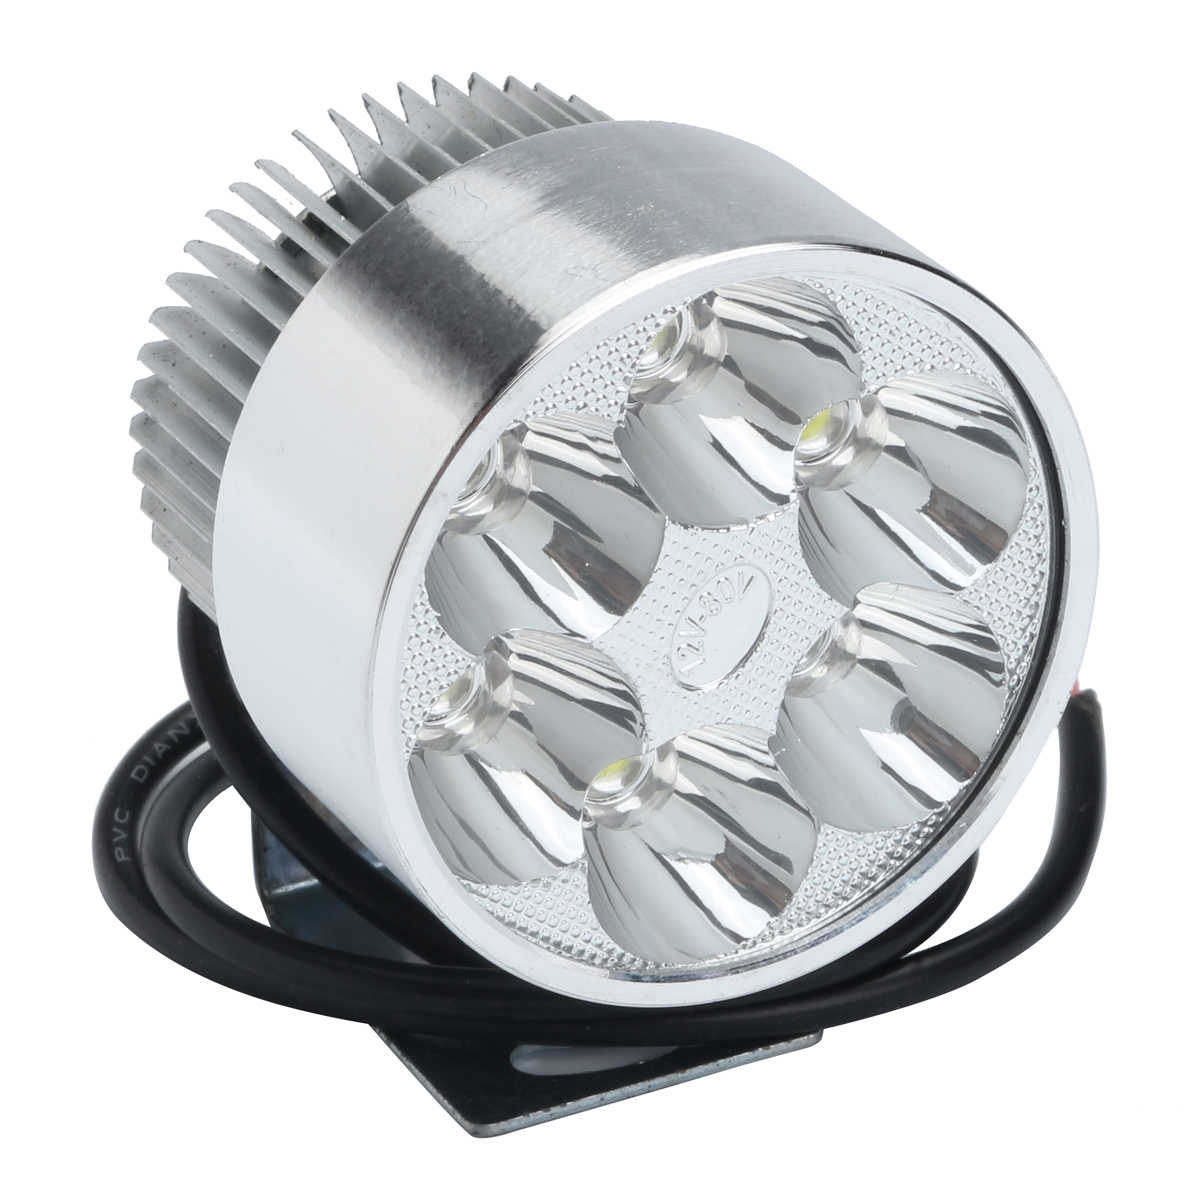 12V 30W Motorcycle Scooter Moped High Power Spot Light Waterproof LED Headlights